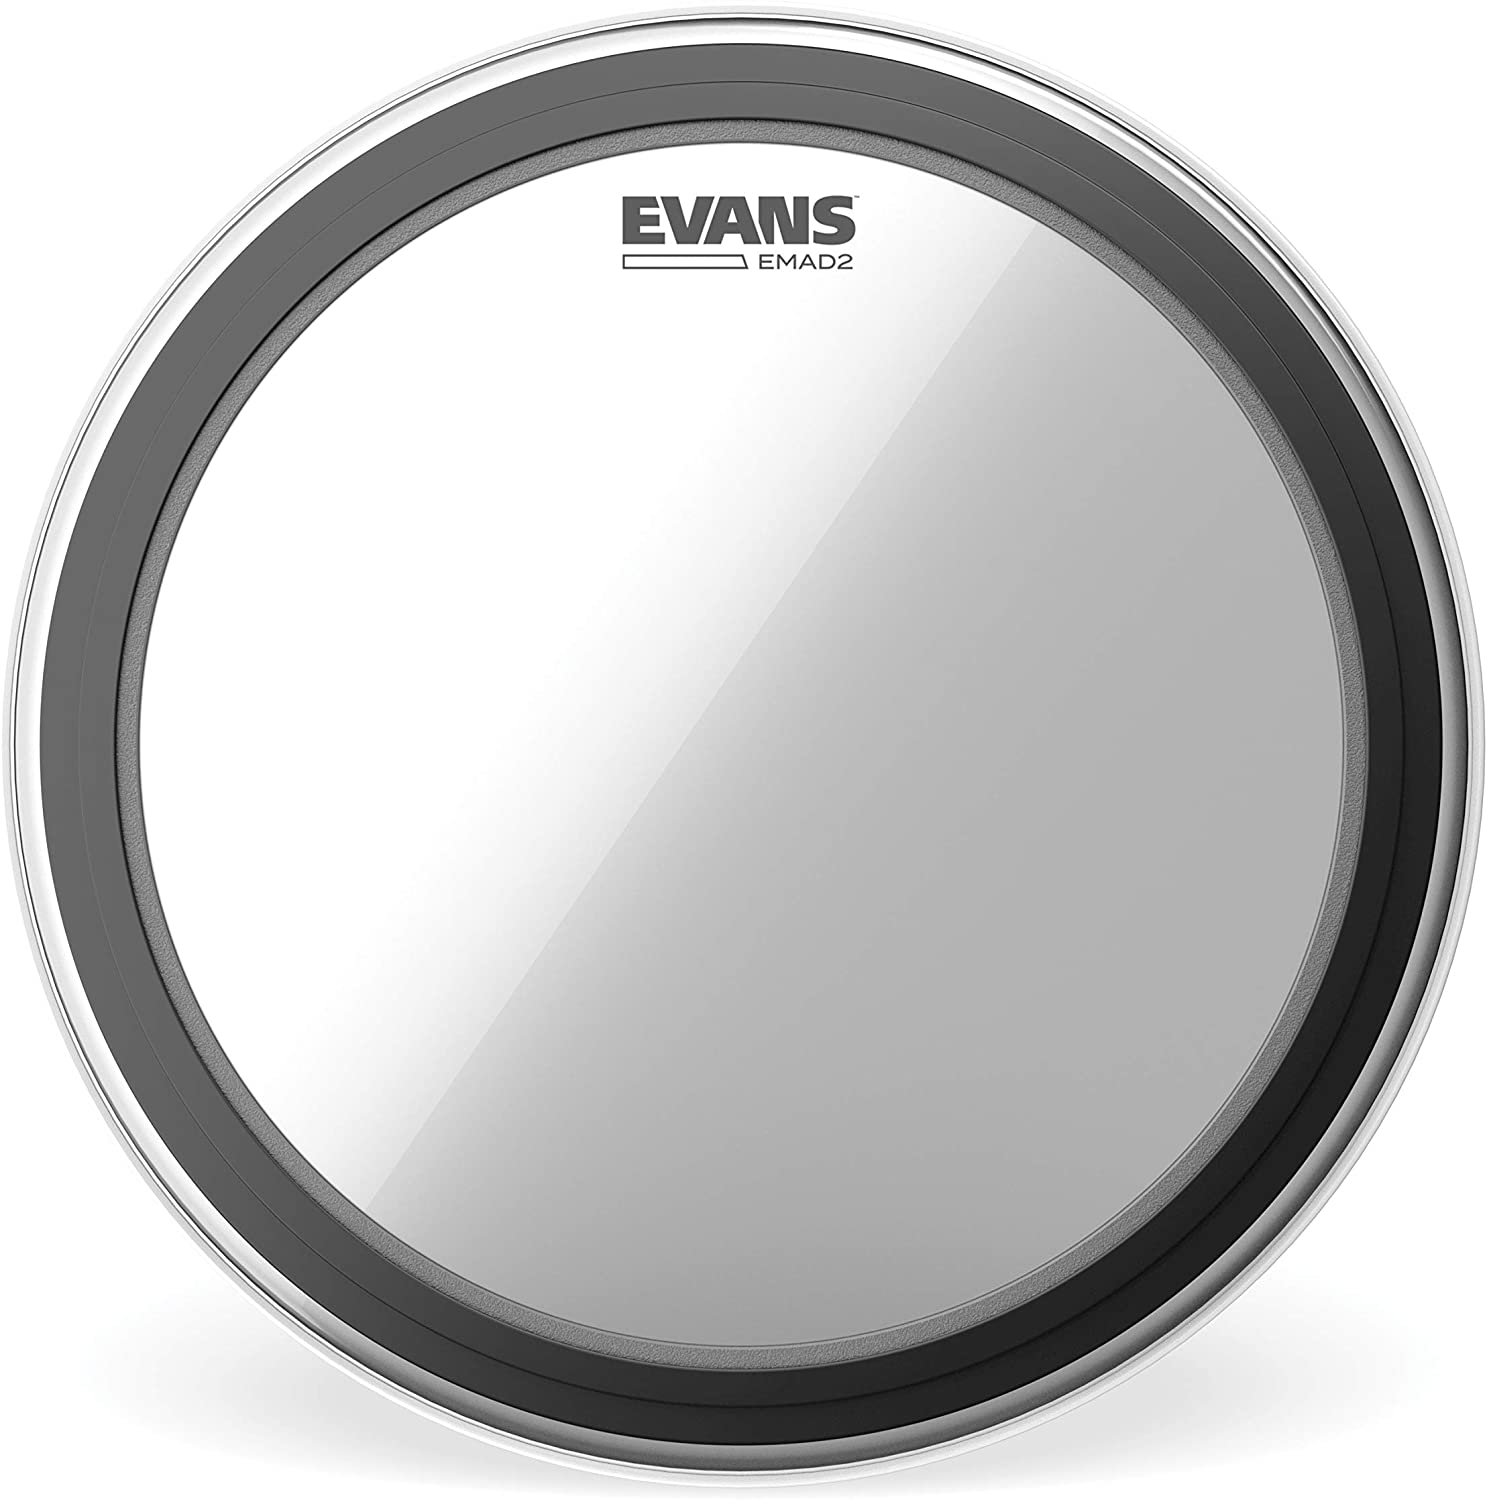 Evans EMAD2 Clear Bass Drum Head, 22 – Externally Mounted Adjustable Damping System Allows Player to Adjust Attack and Focus – 2 Foam Damping Rings for Sound Options - Versatile for All Music Genres 81P9ppTvsWL